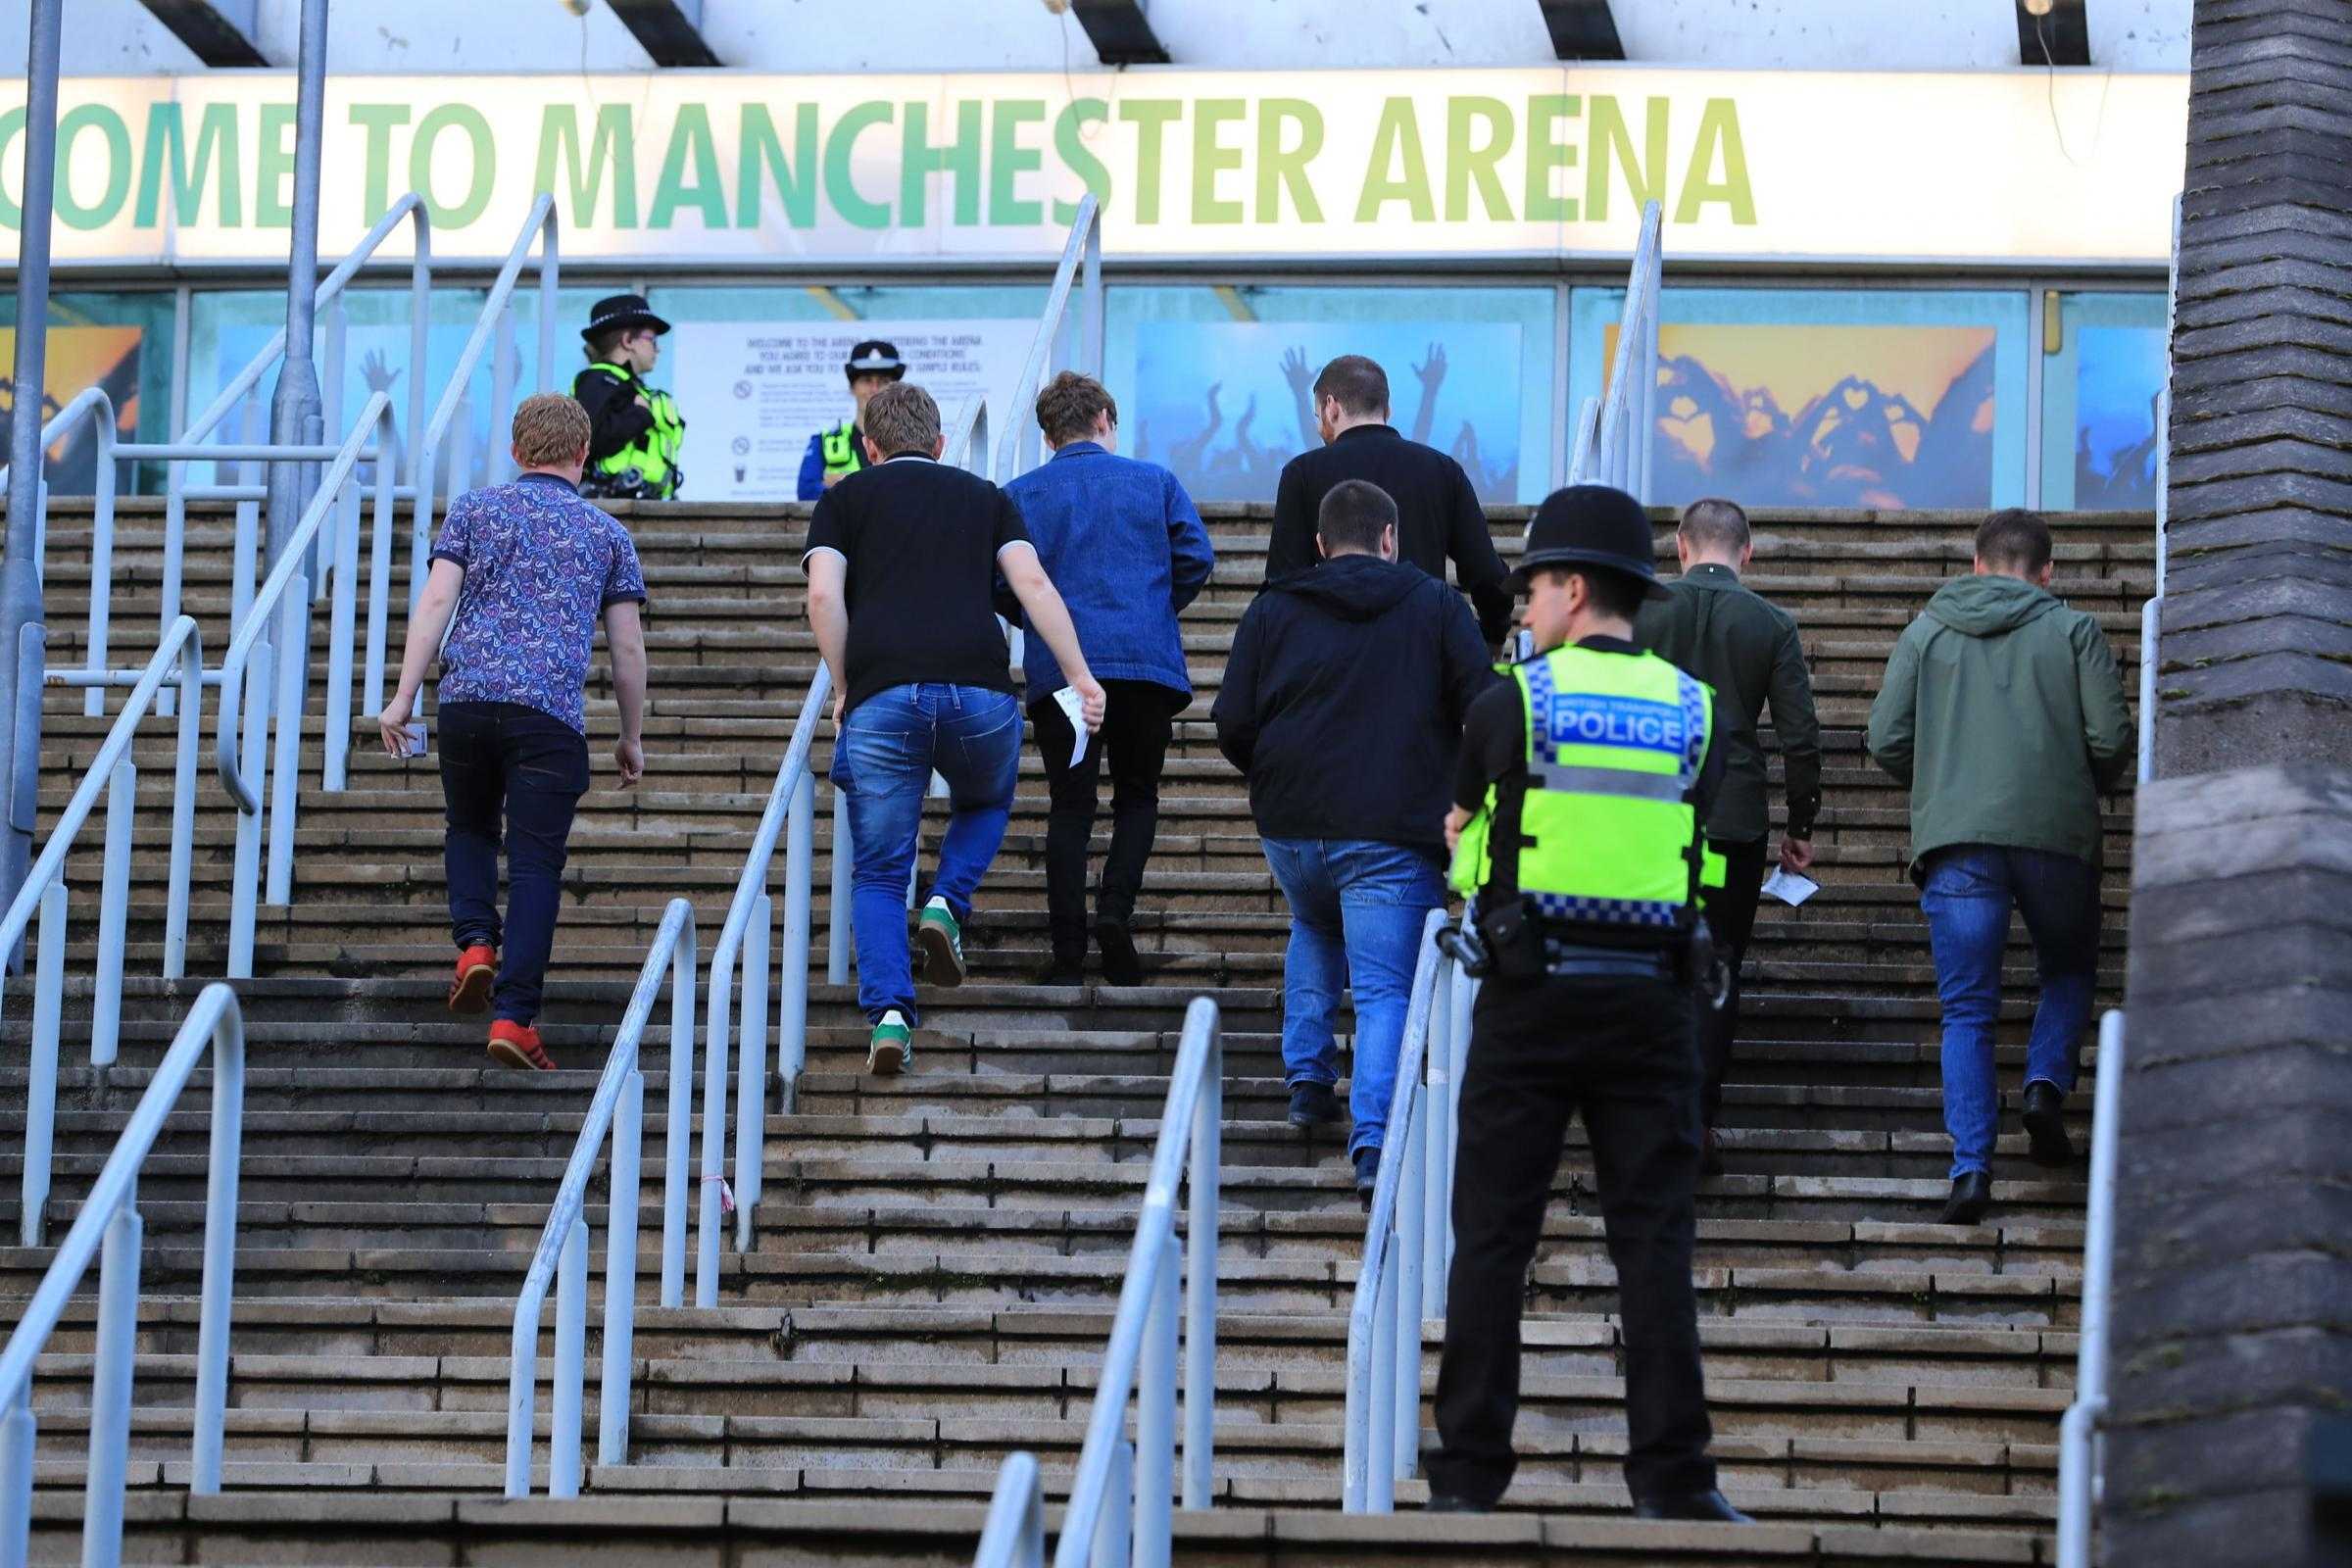 People arrive at the Manchester Arena under police watch